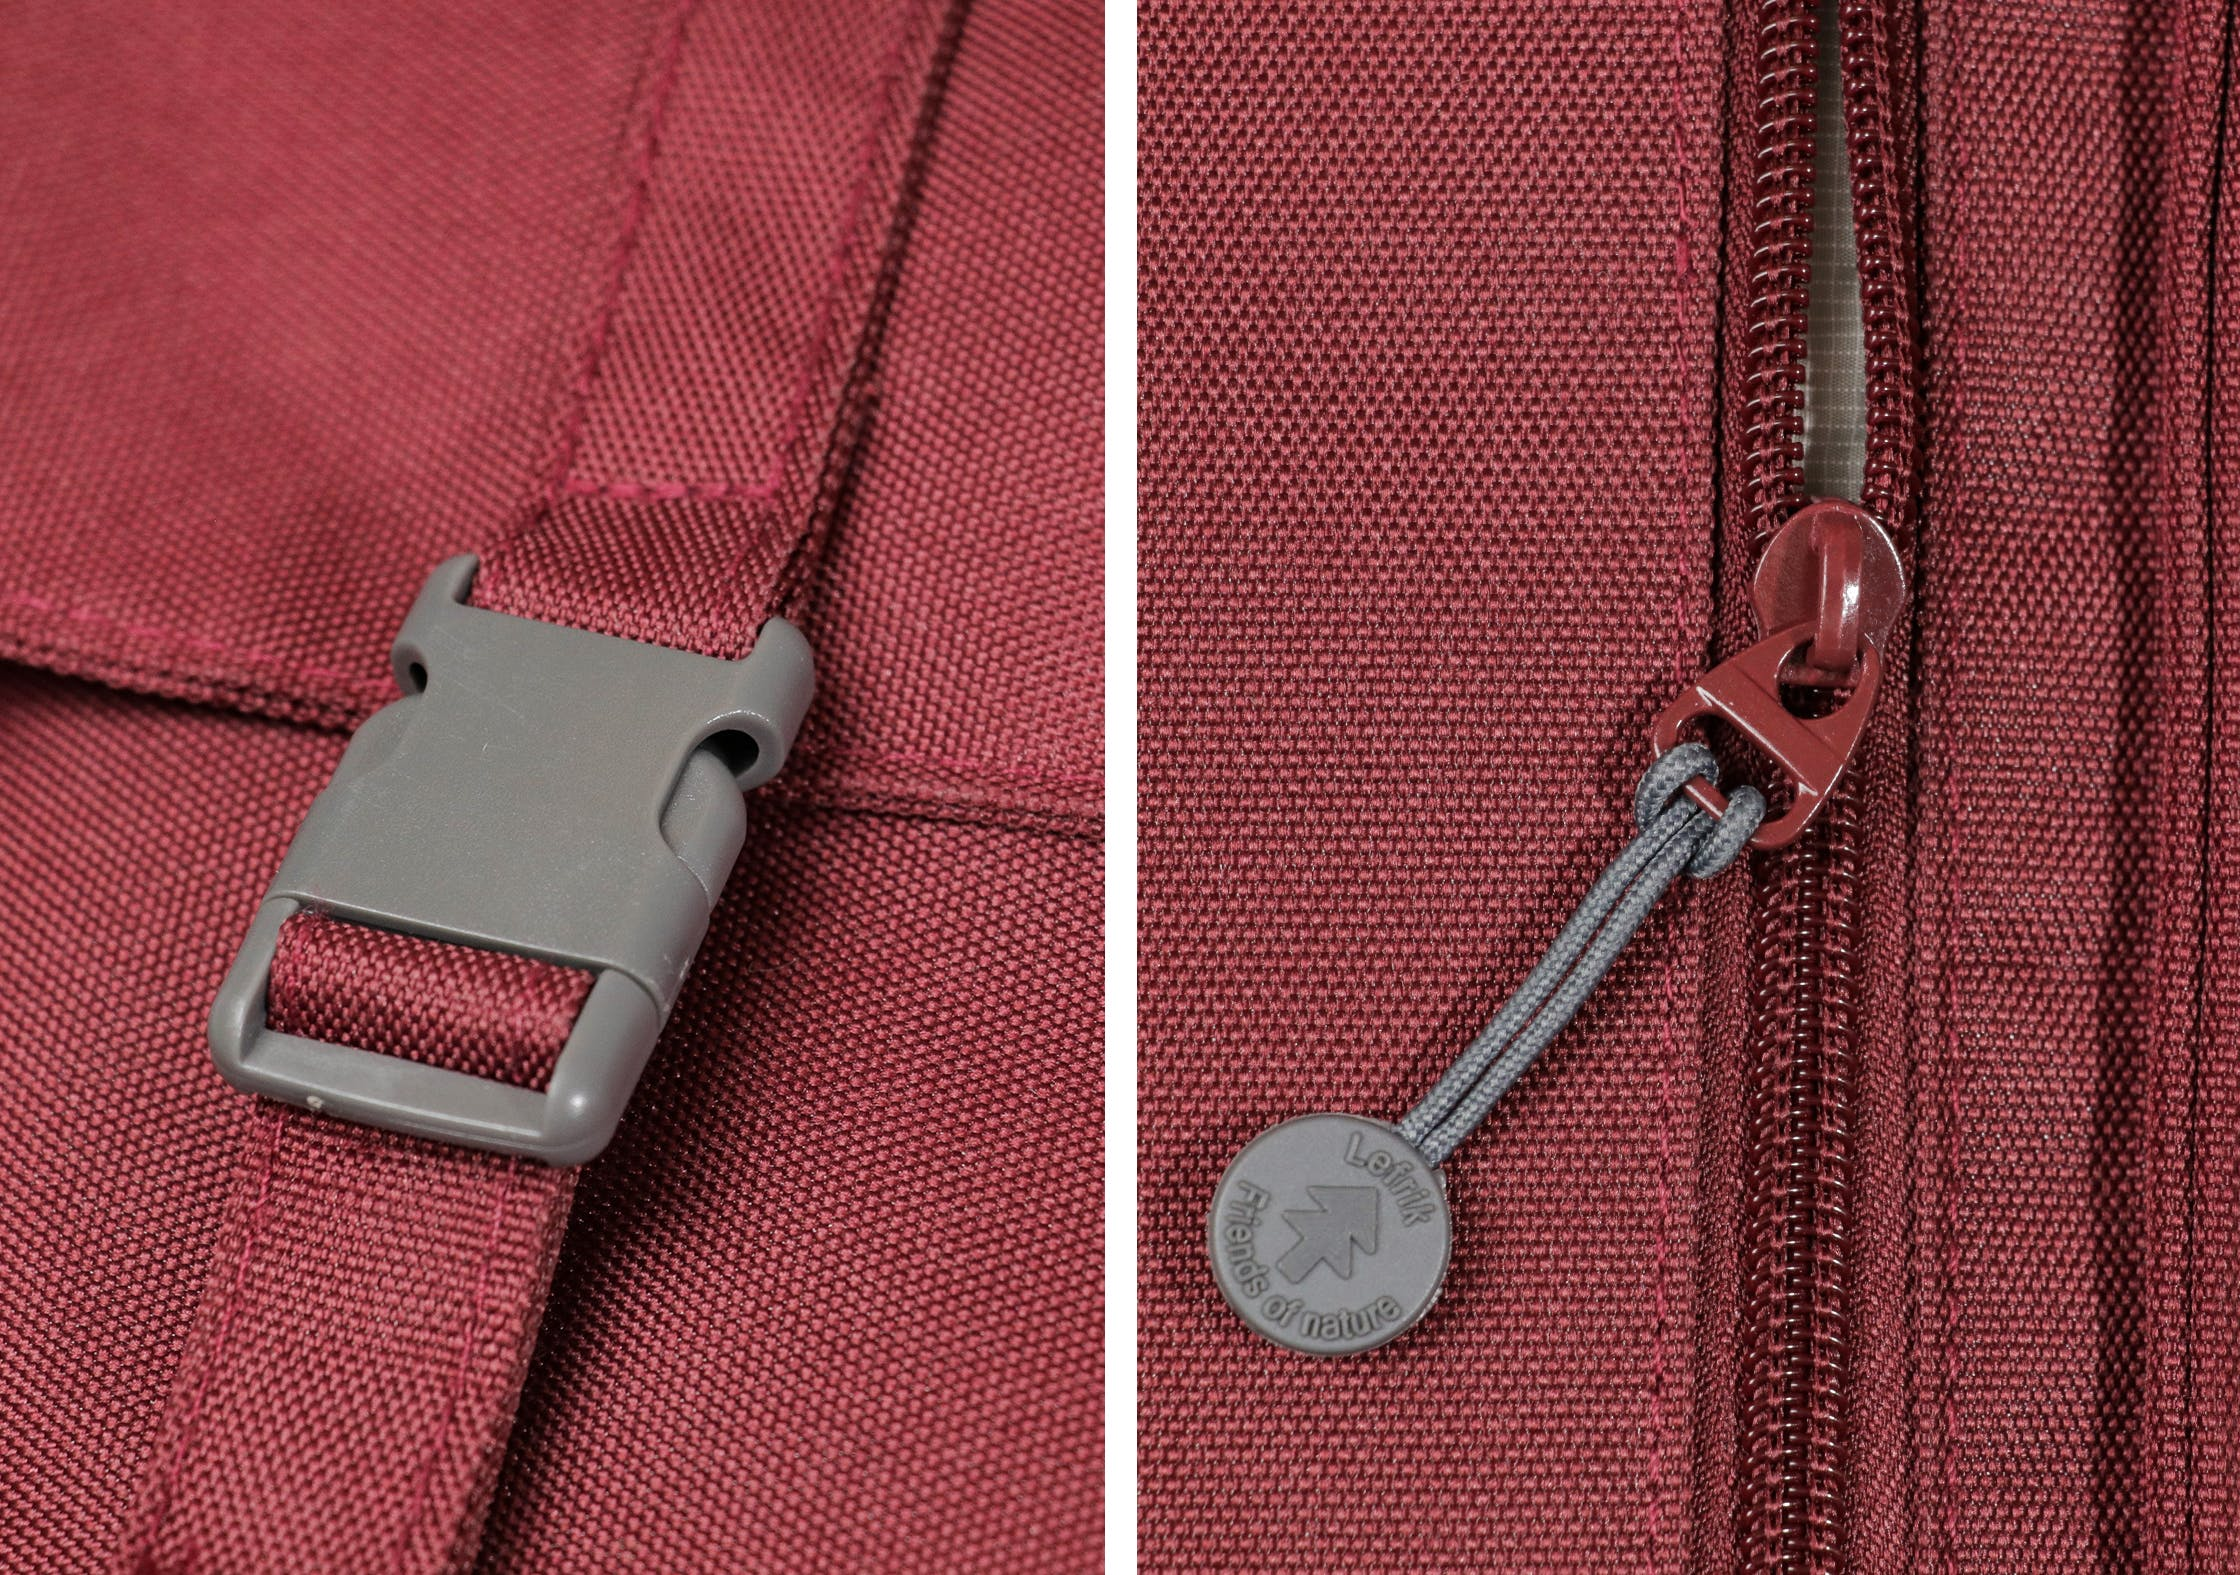 Lefrik Handy Backpack Zippers & Buckles